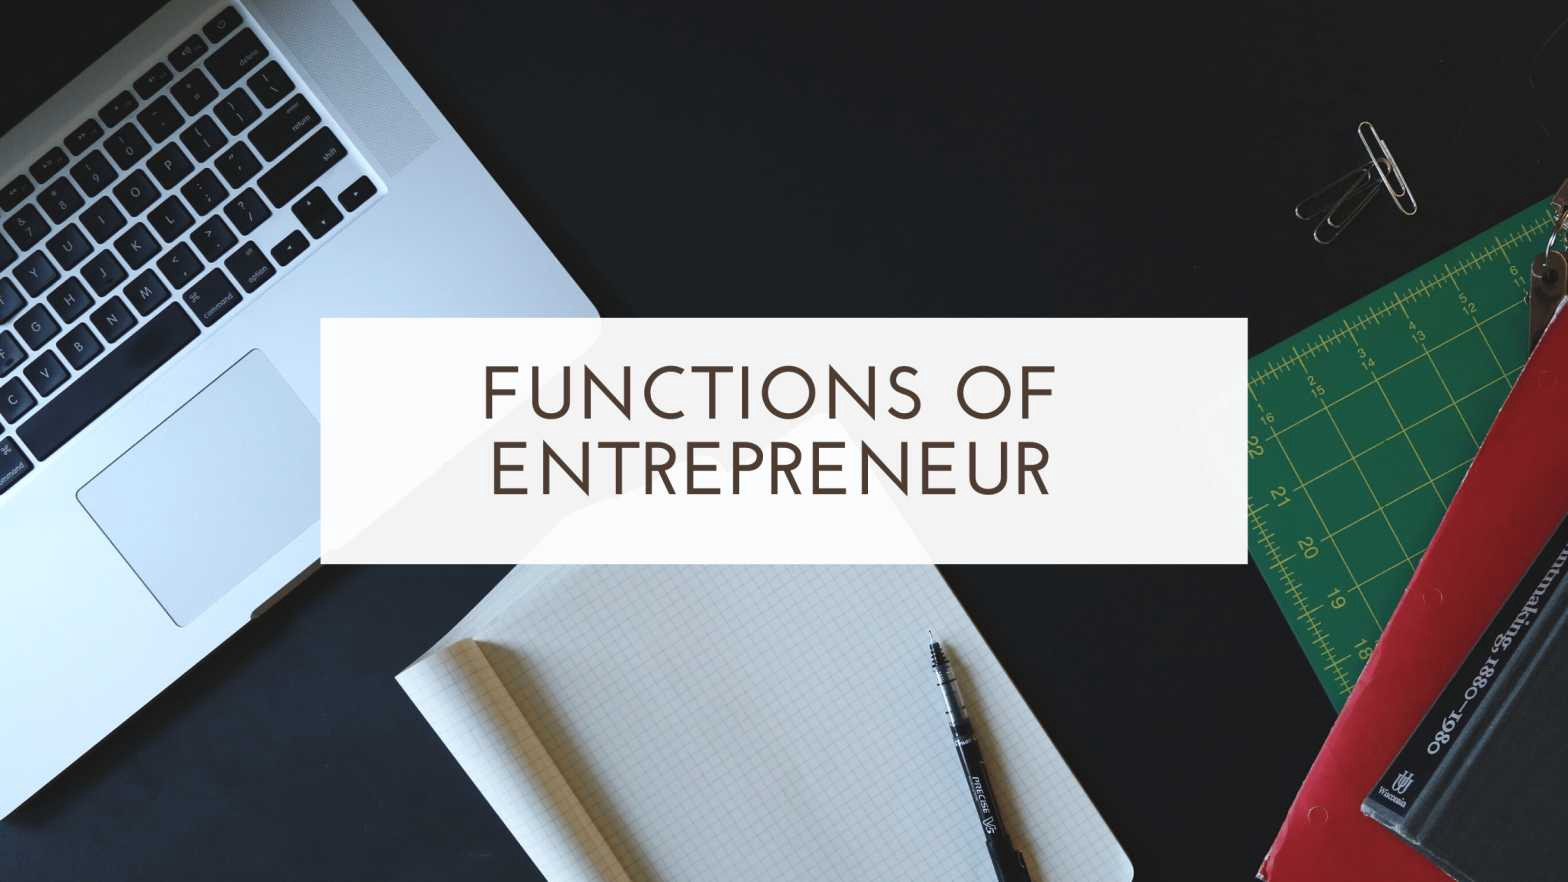 Functions of Entrepreneur- A Simple Guide